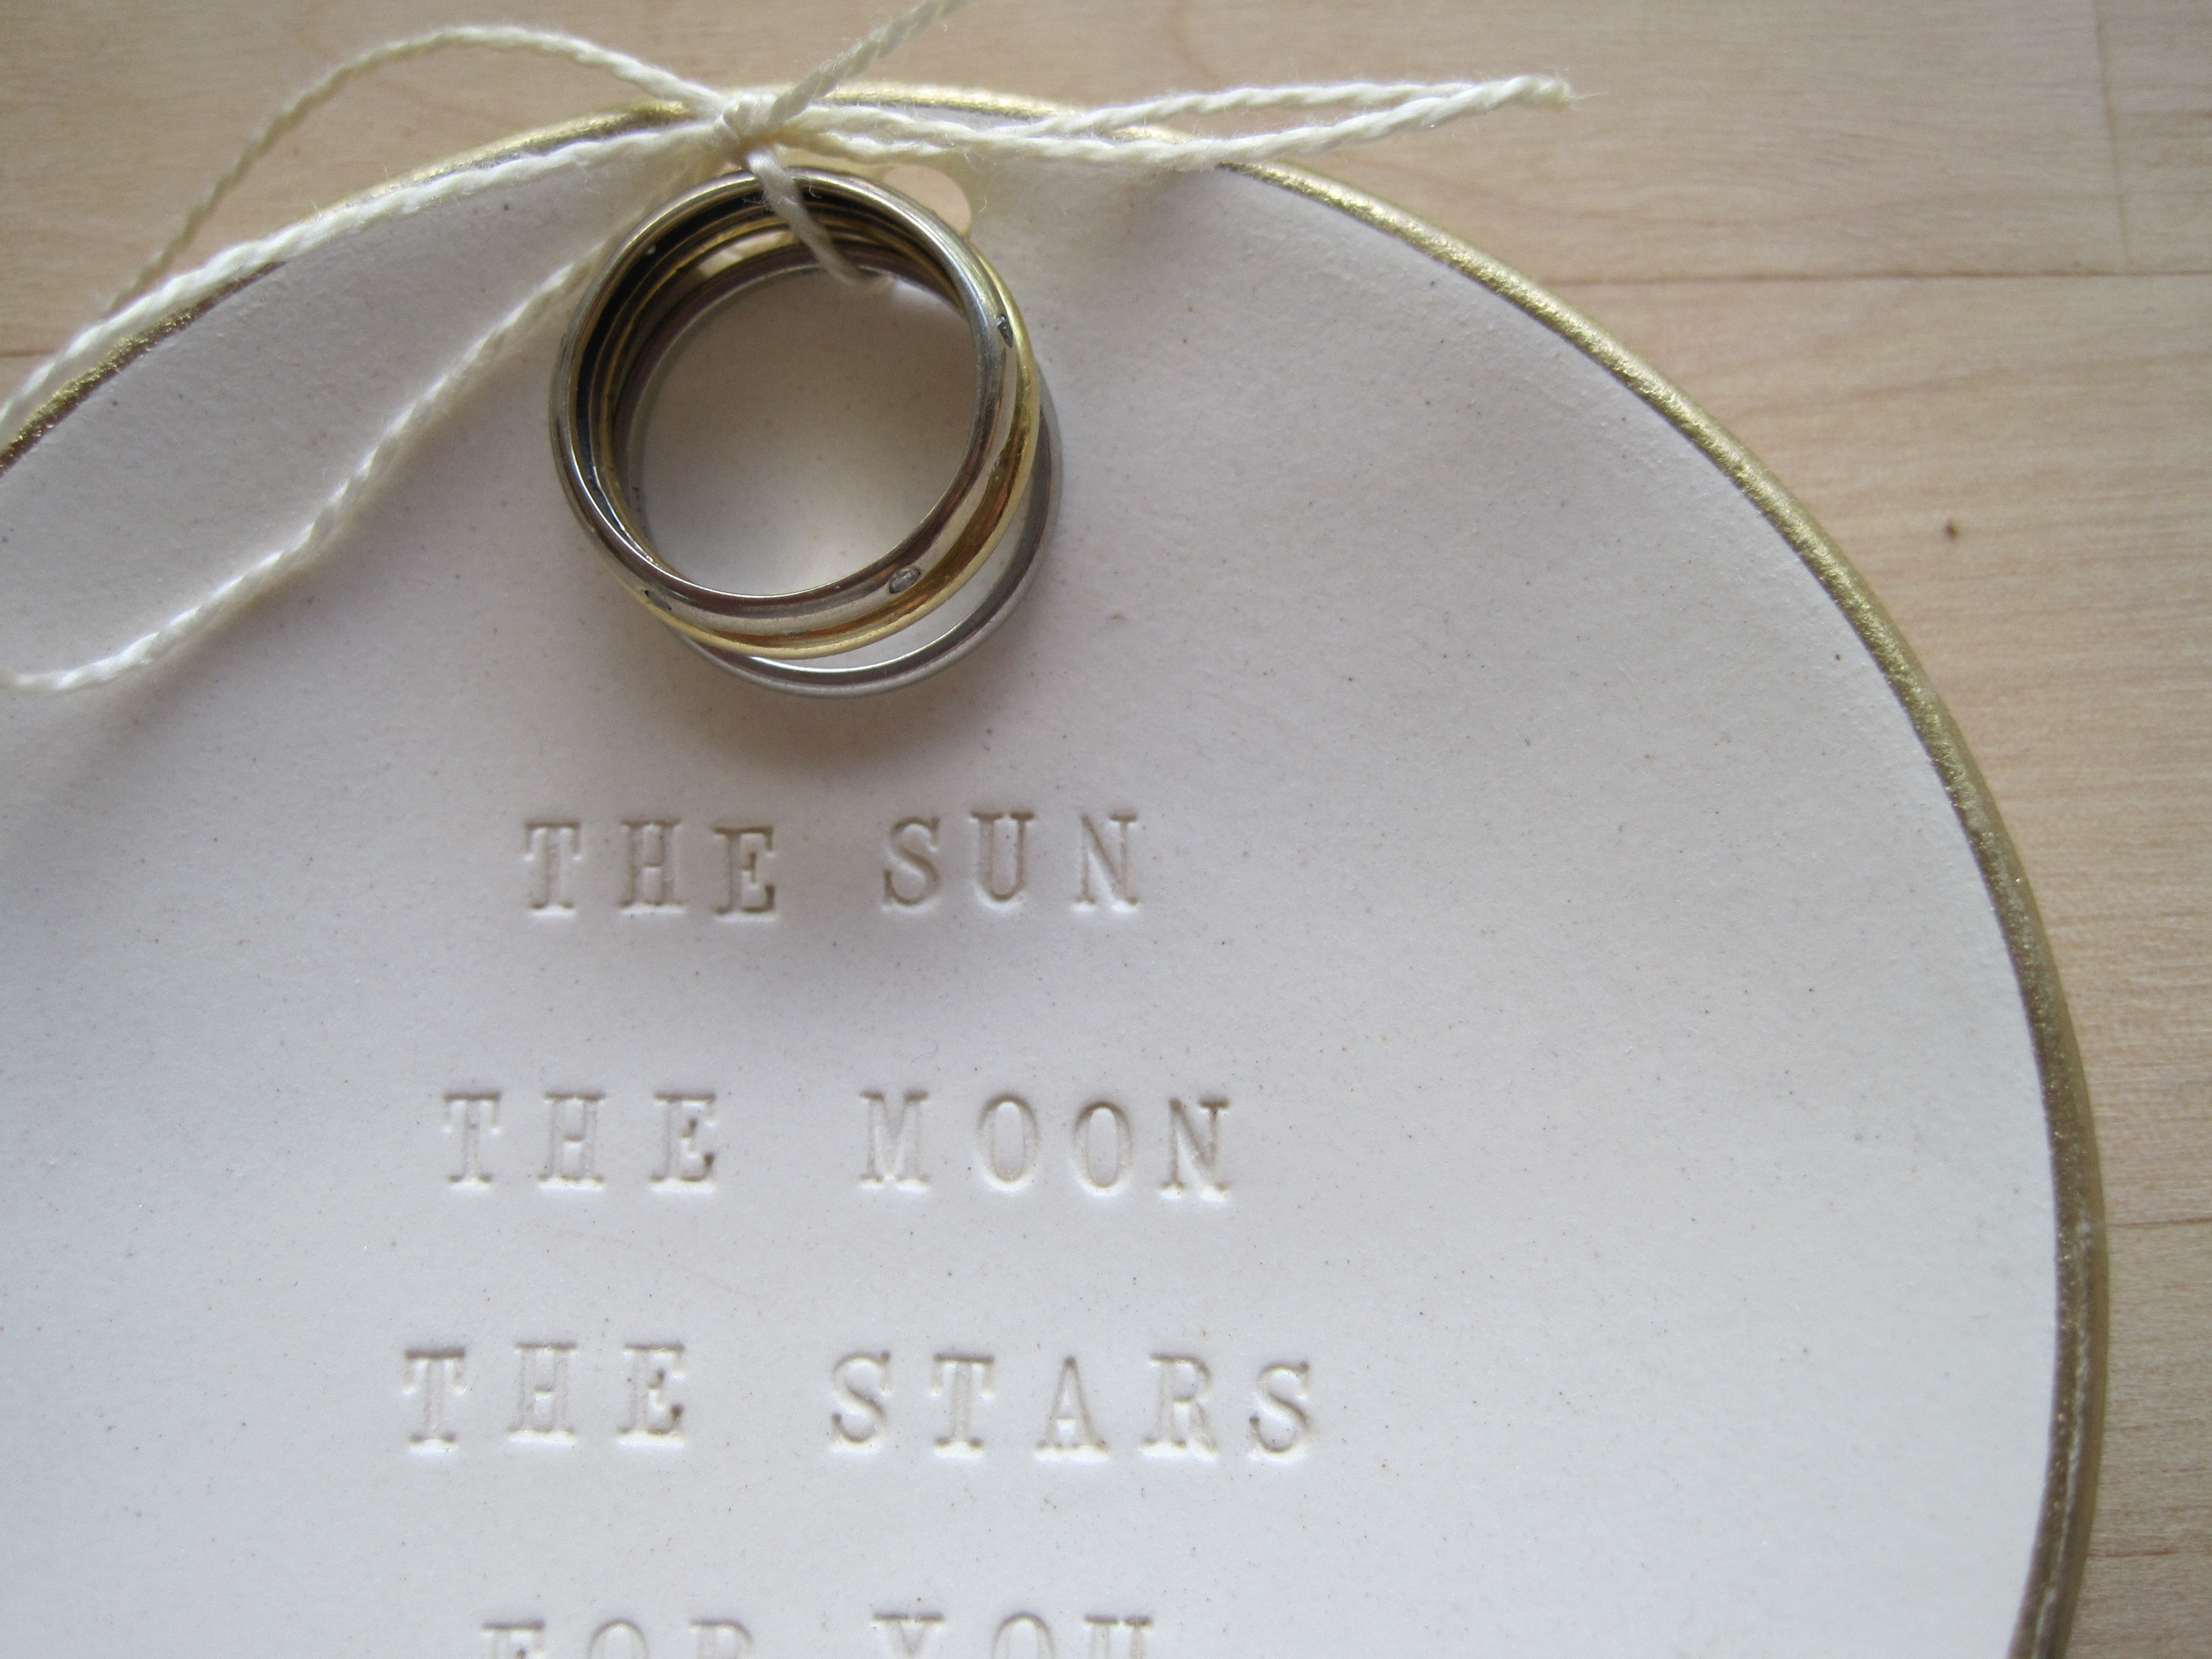 Ceremony, Inspiration, Flowers & Decor, Jewelry, Bridesmaids, Bridesmaids Dresses, Fashion, white, gold, Engagement Rings, Ring, Board, Pillow, Bearer, Weddings, Alternative, Bowl, Holder, Martha, Stewart, Stamped, Dish, Words, 18k, Palomas nest